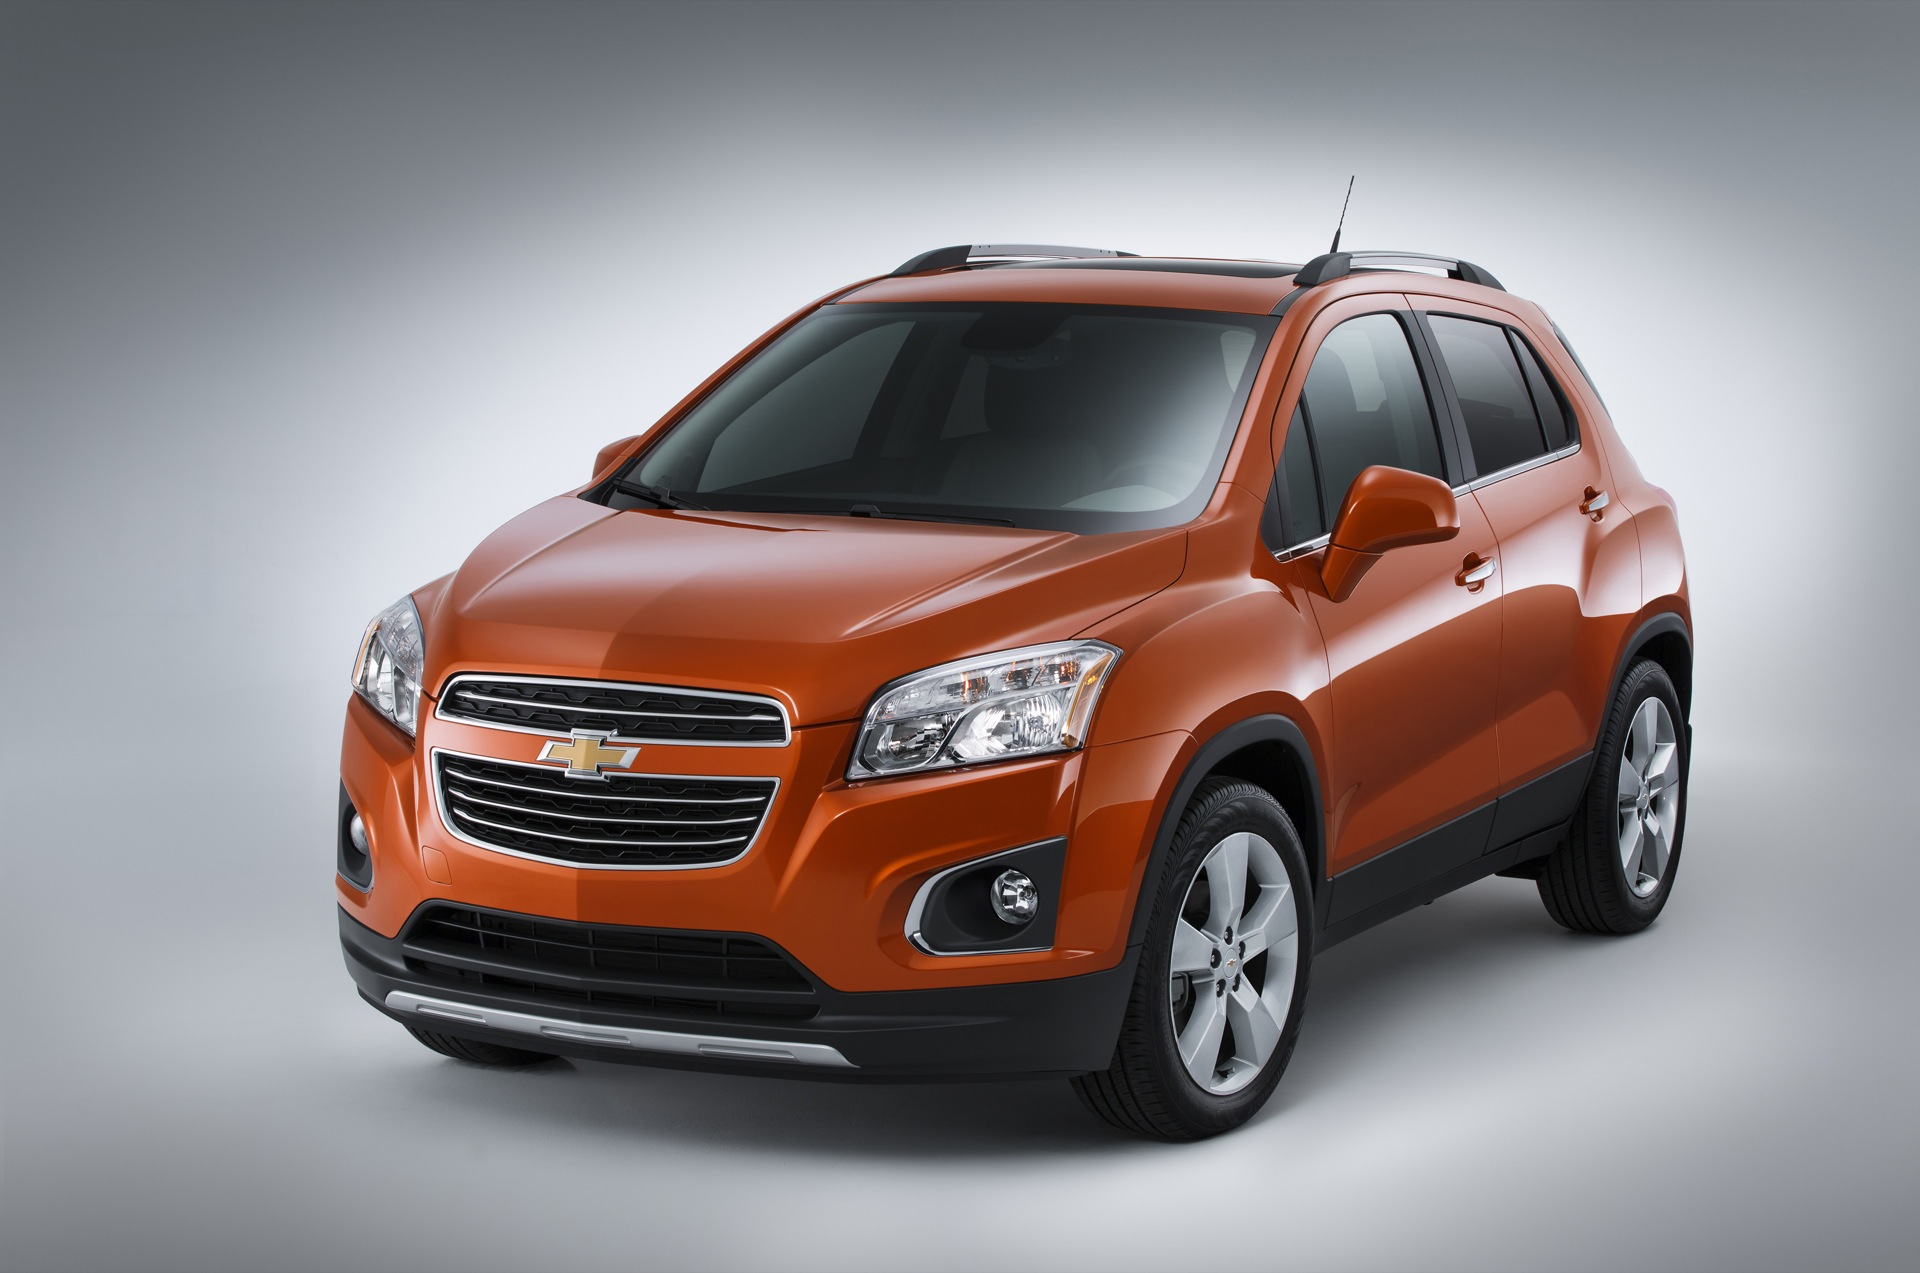 2017 Chevrolet Trax Buick Encore Small Suvs Get Iihs Top Safety Pick Label